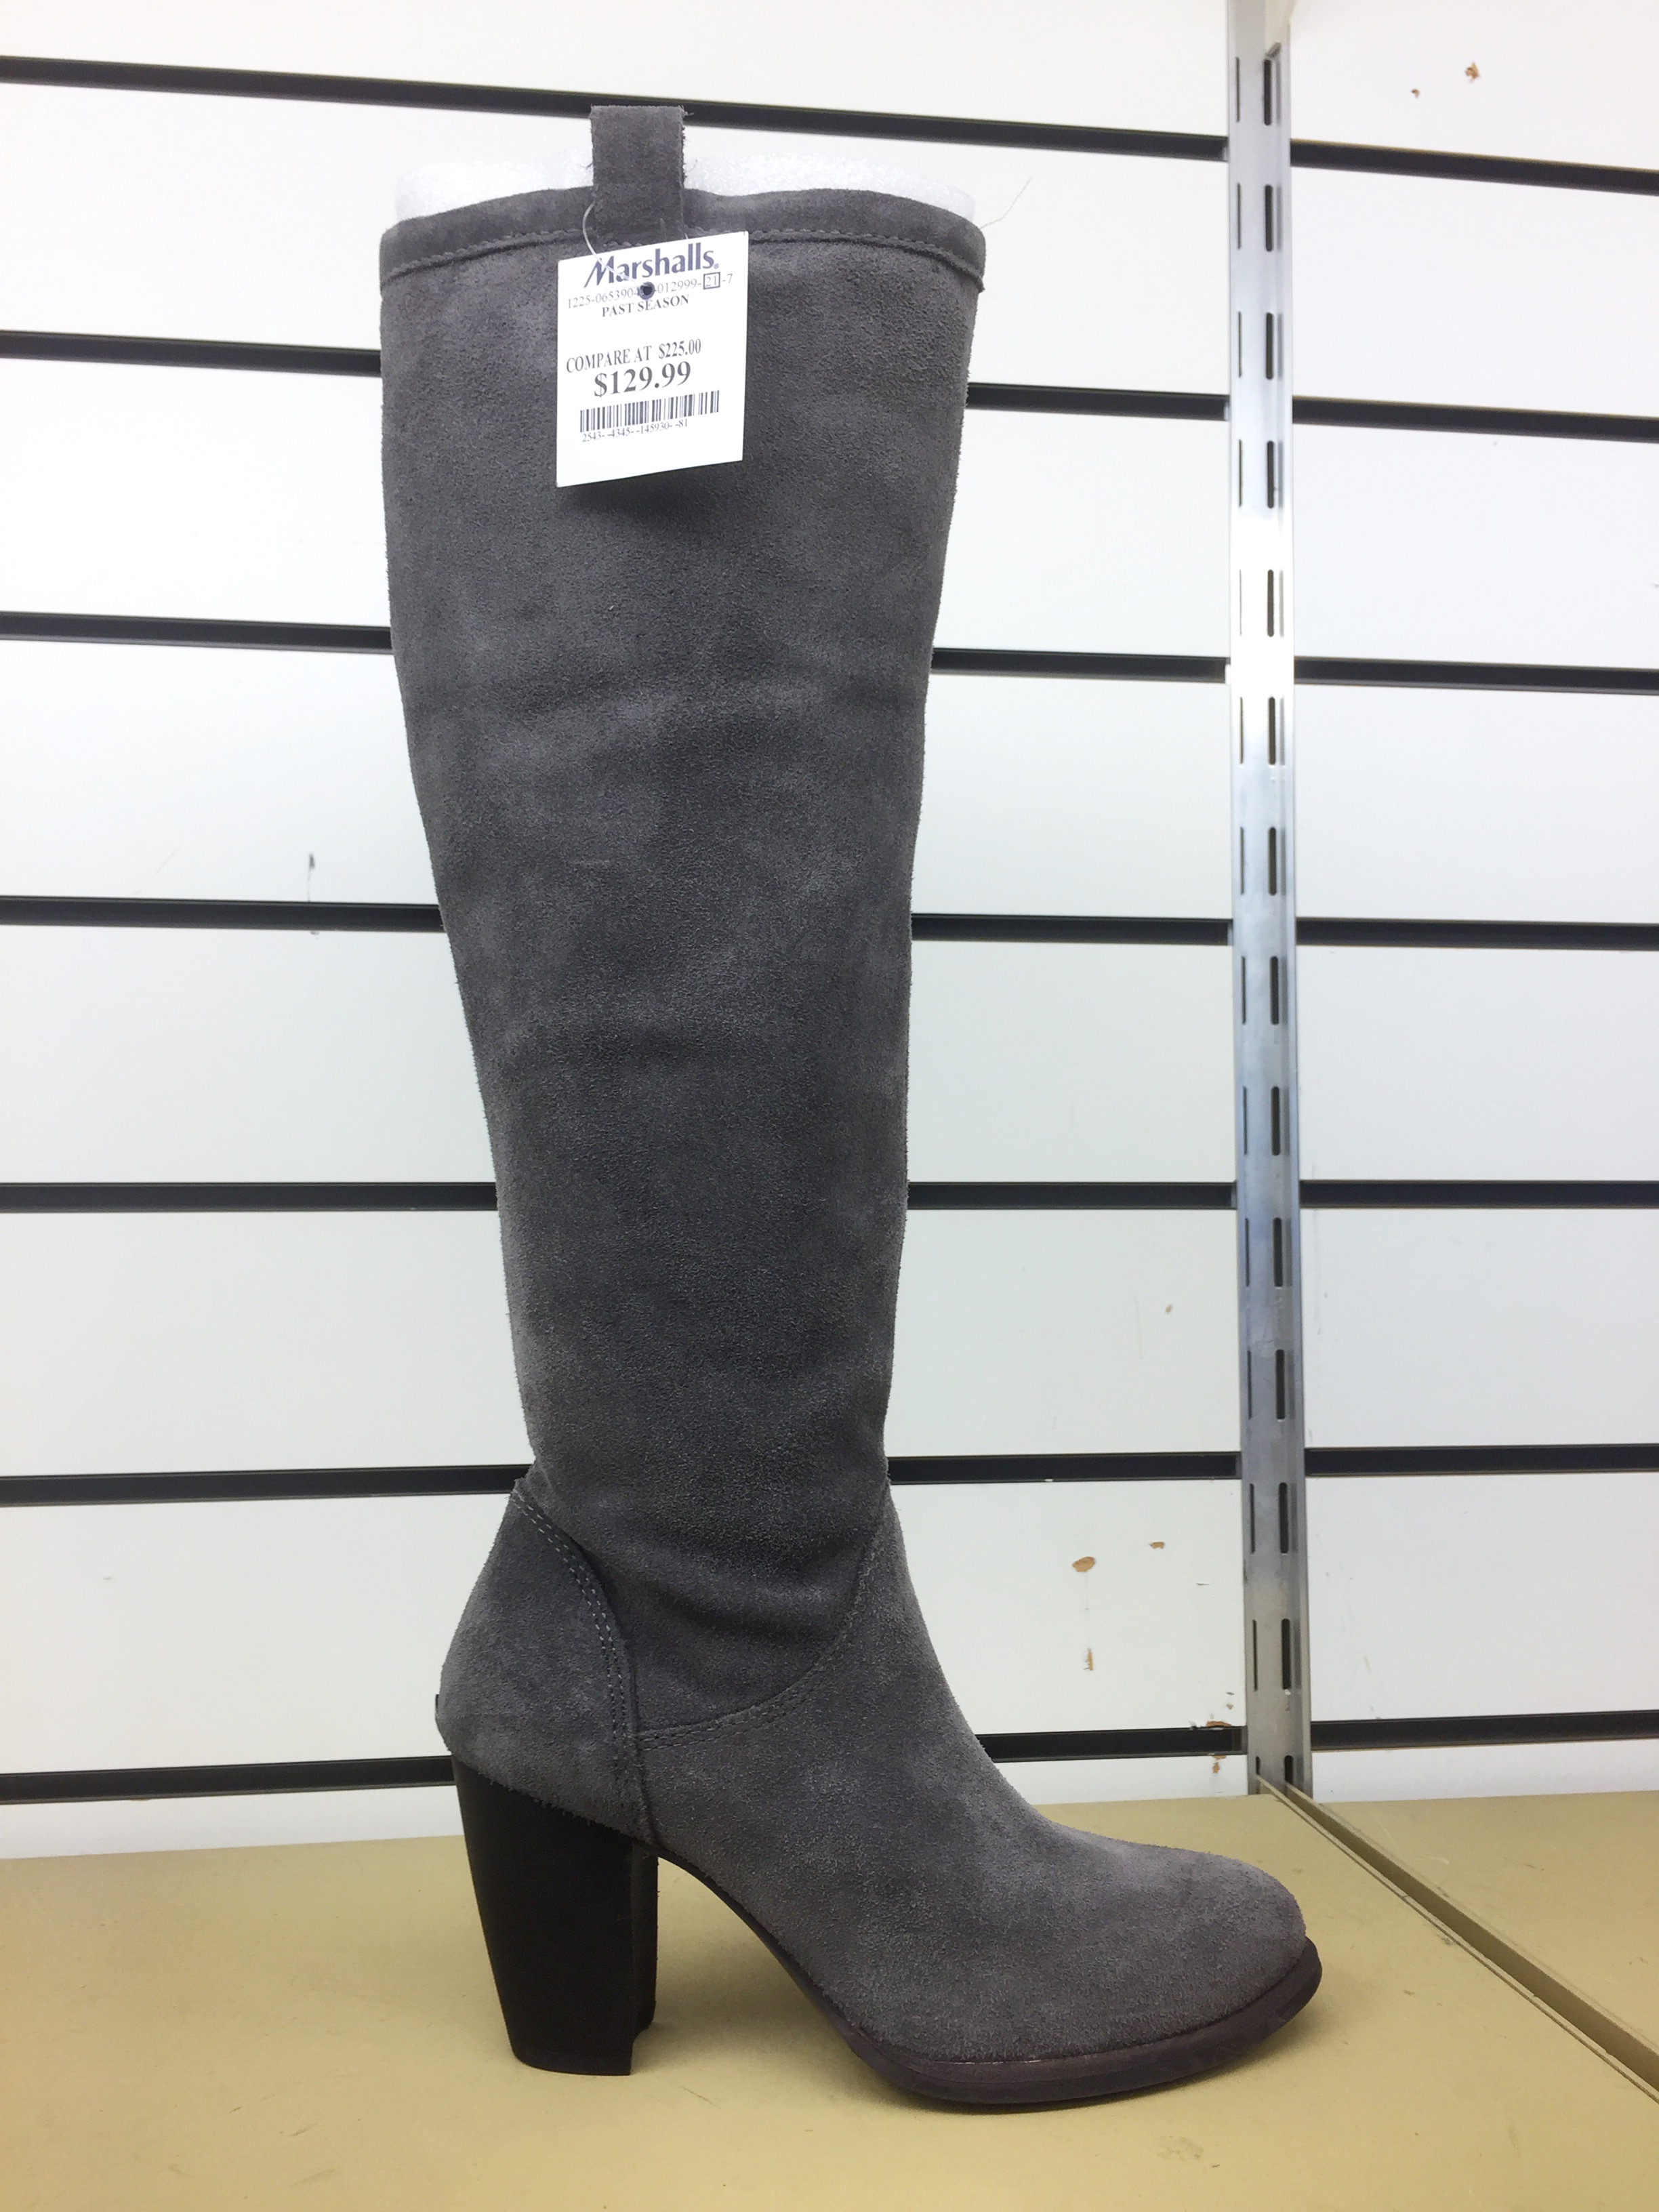 These Ugg boots   were not cheap, but they were way marked down. And I've been on the lookout for boots with a heel that are still comfortable. I can't imagine anyone making a more comfortable boot with a heel than Ugg.